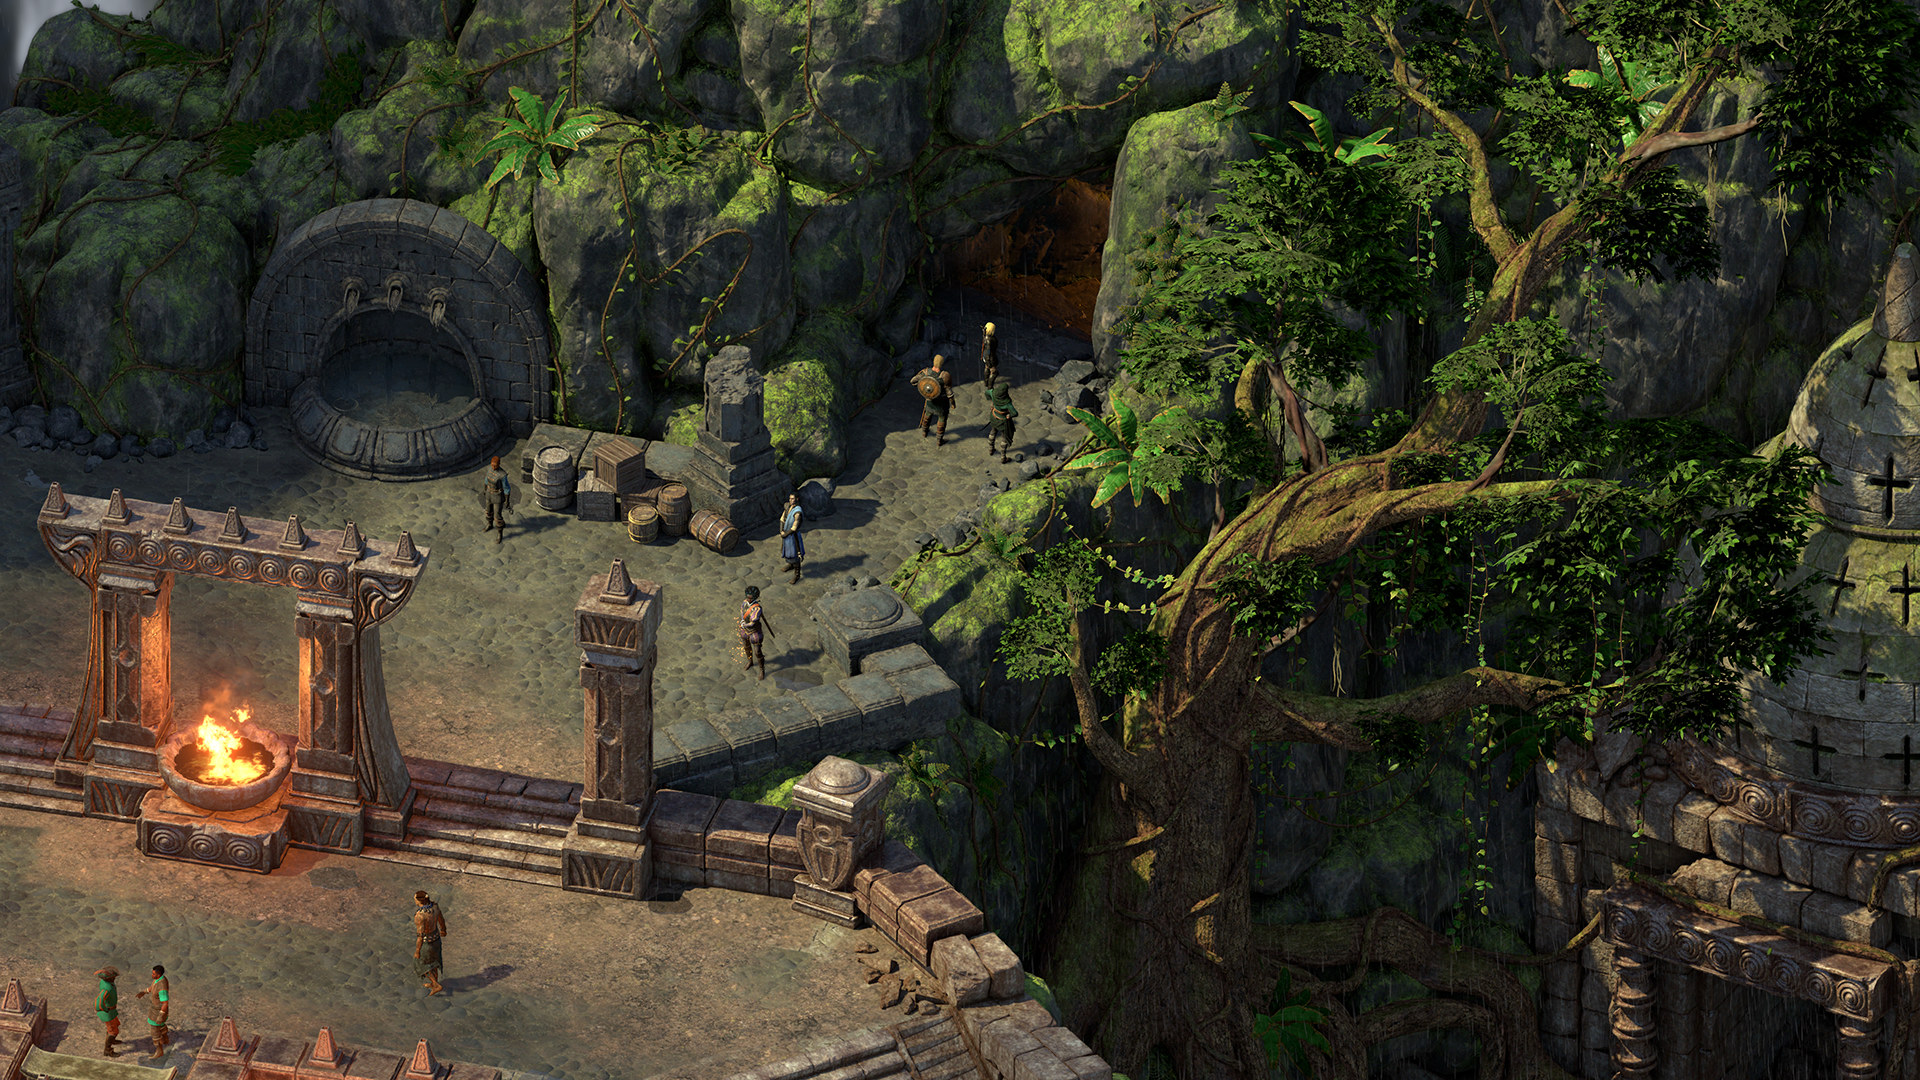 Pillars Of Eternity Wallpaper: Obsidian Entertainment Gives Update On Pillars Of Eternity